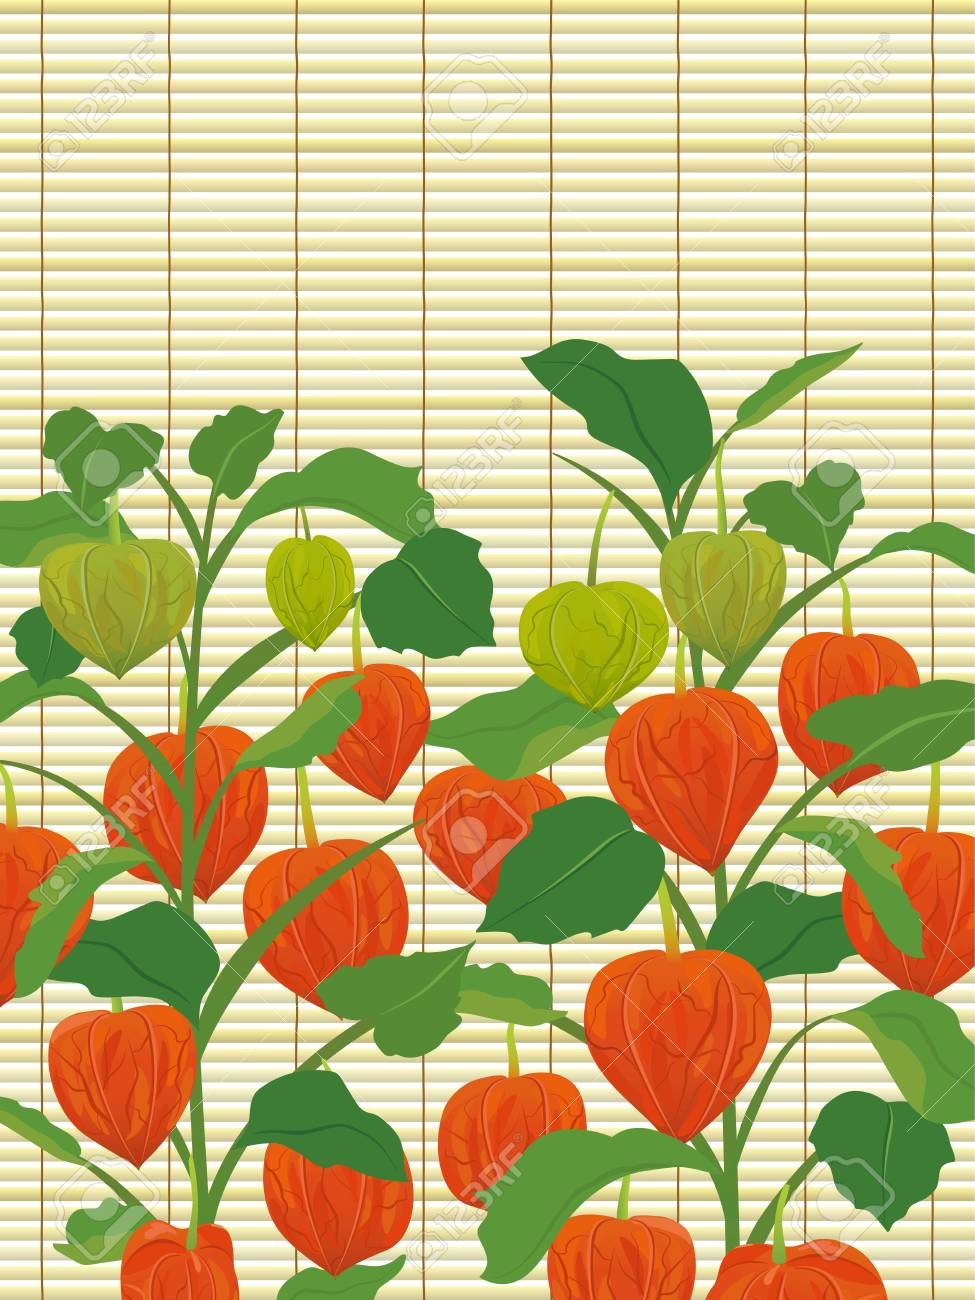 Chinese Lantern Plants And Bamboo Blind Frame Royalty Free Cliparts on chinese flying lanterns, lace aloe plant, chinese sky lanterns, chinese red plant, flowering maple plant, bleeding heart plant, chinese rain tree, verbena plant, rhododendron plant, baloon flower plant, climbing nightshade plant, chinese tomato plant, chinese paper lanterns, chinese money plant, bittersweet plant, foxglove plant, abutilon plant, bird of paradise plant, lupine plant, snapdragon plant,